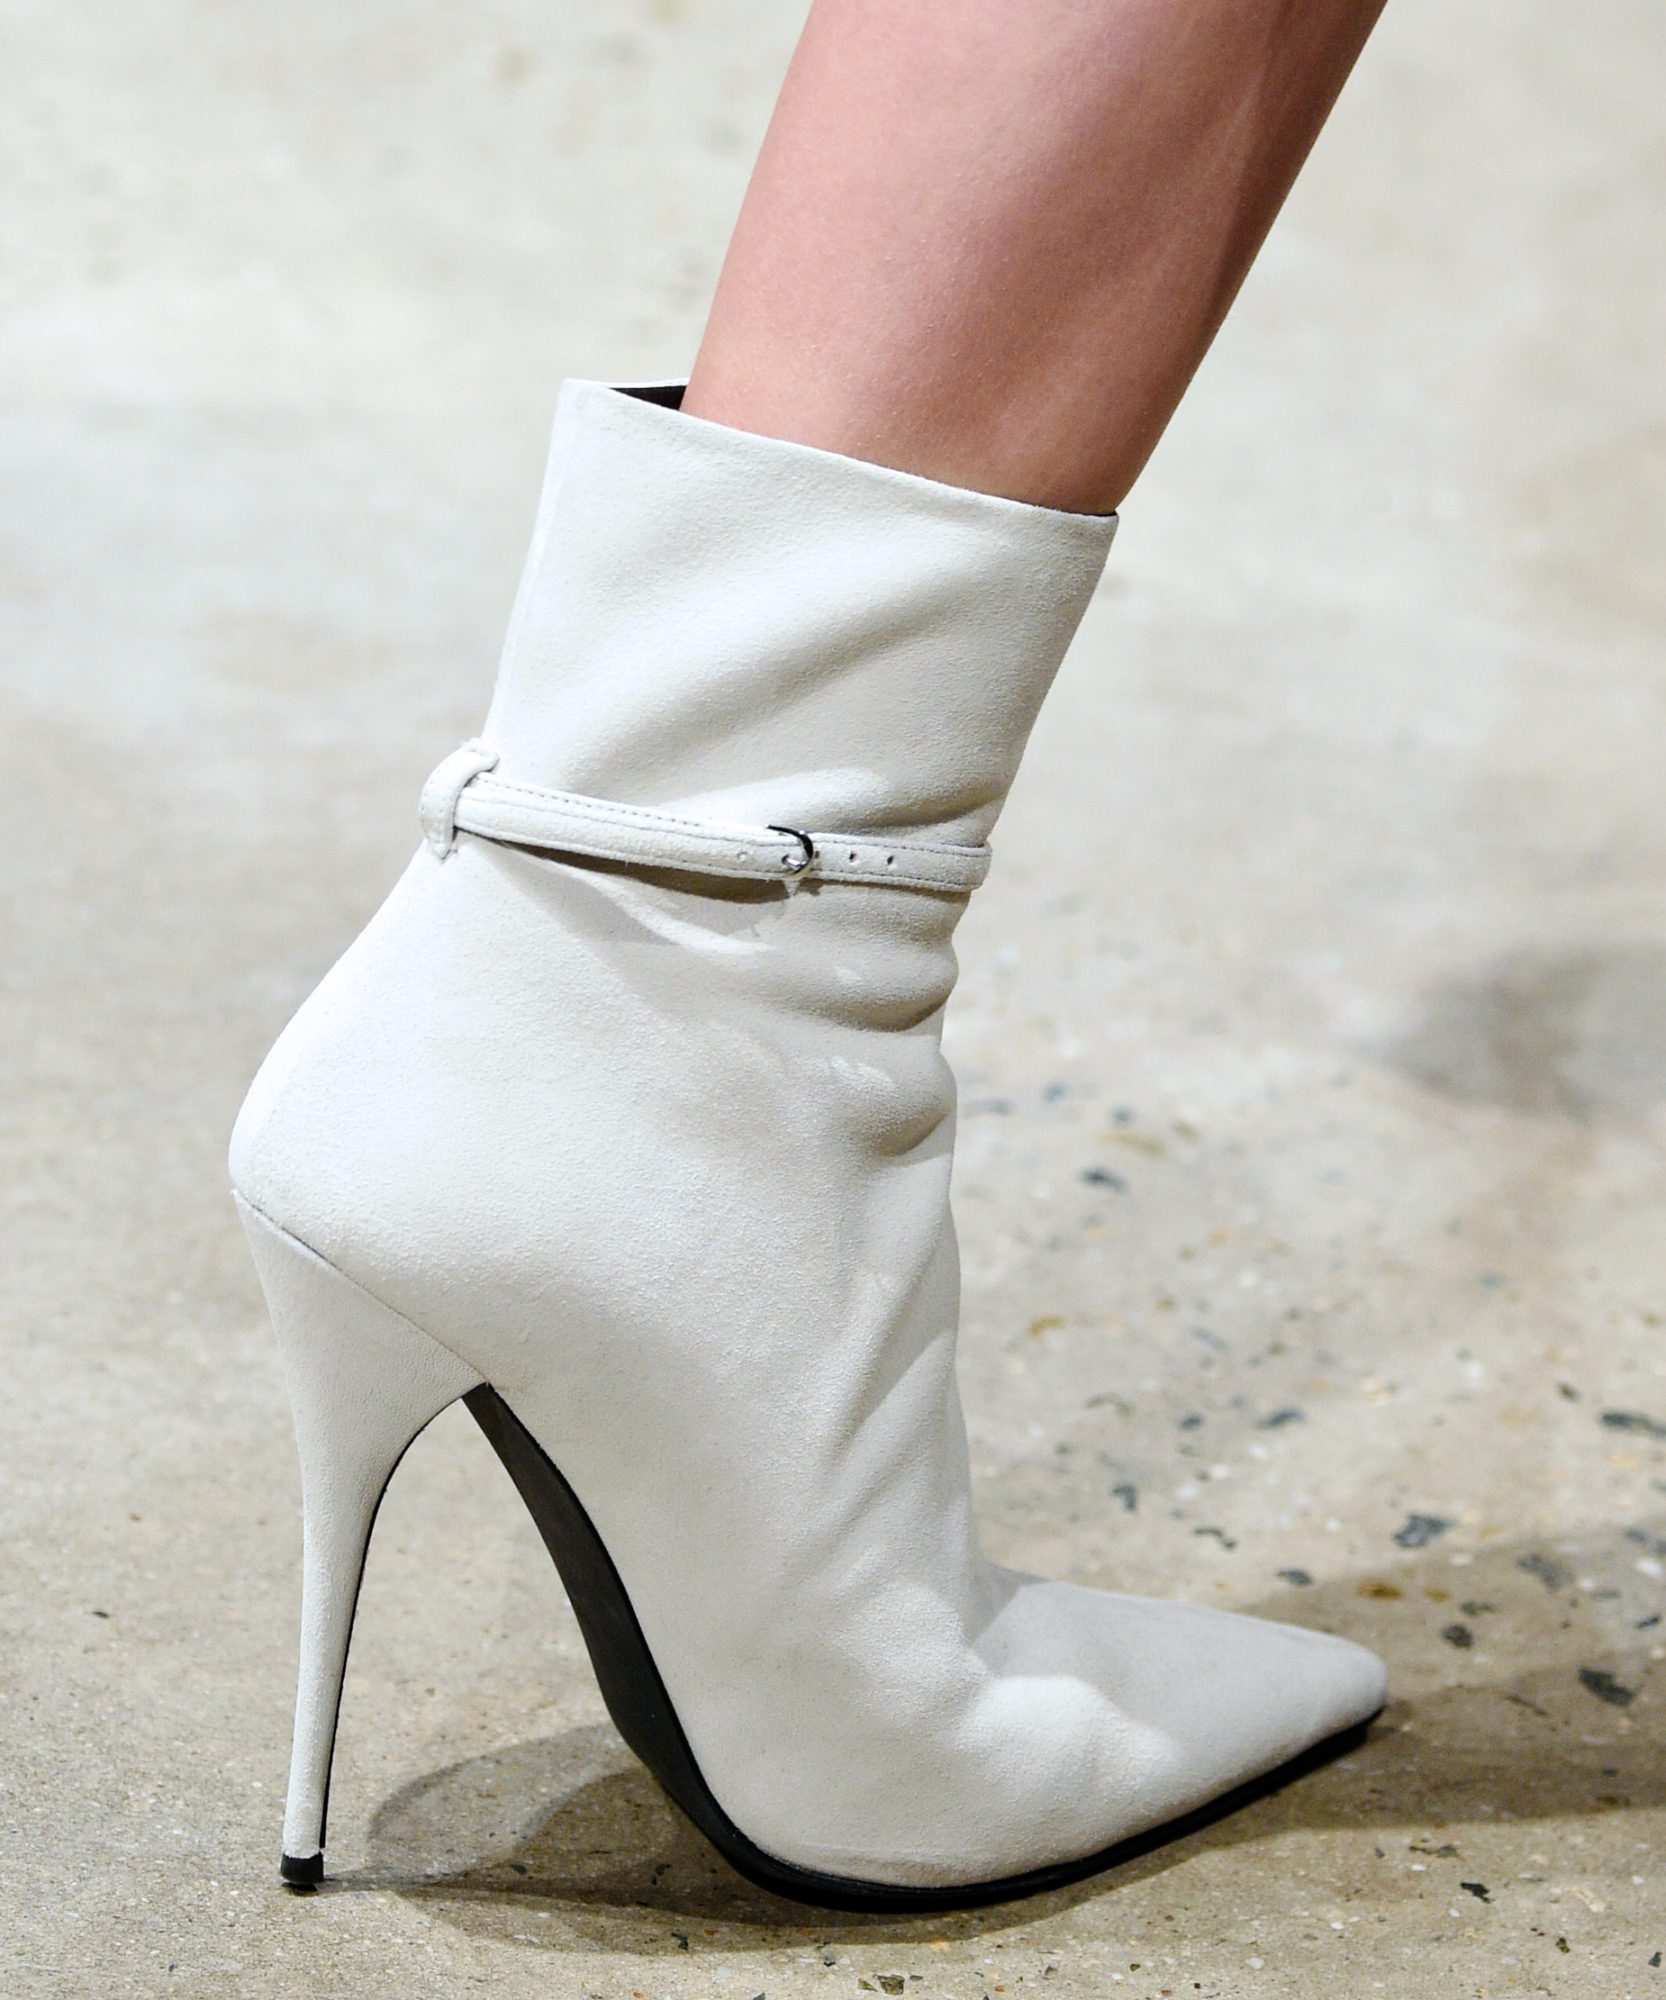 DAY 6: NARCISO RODRIGUEZ ANKLE BOOTIE